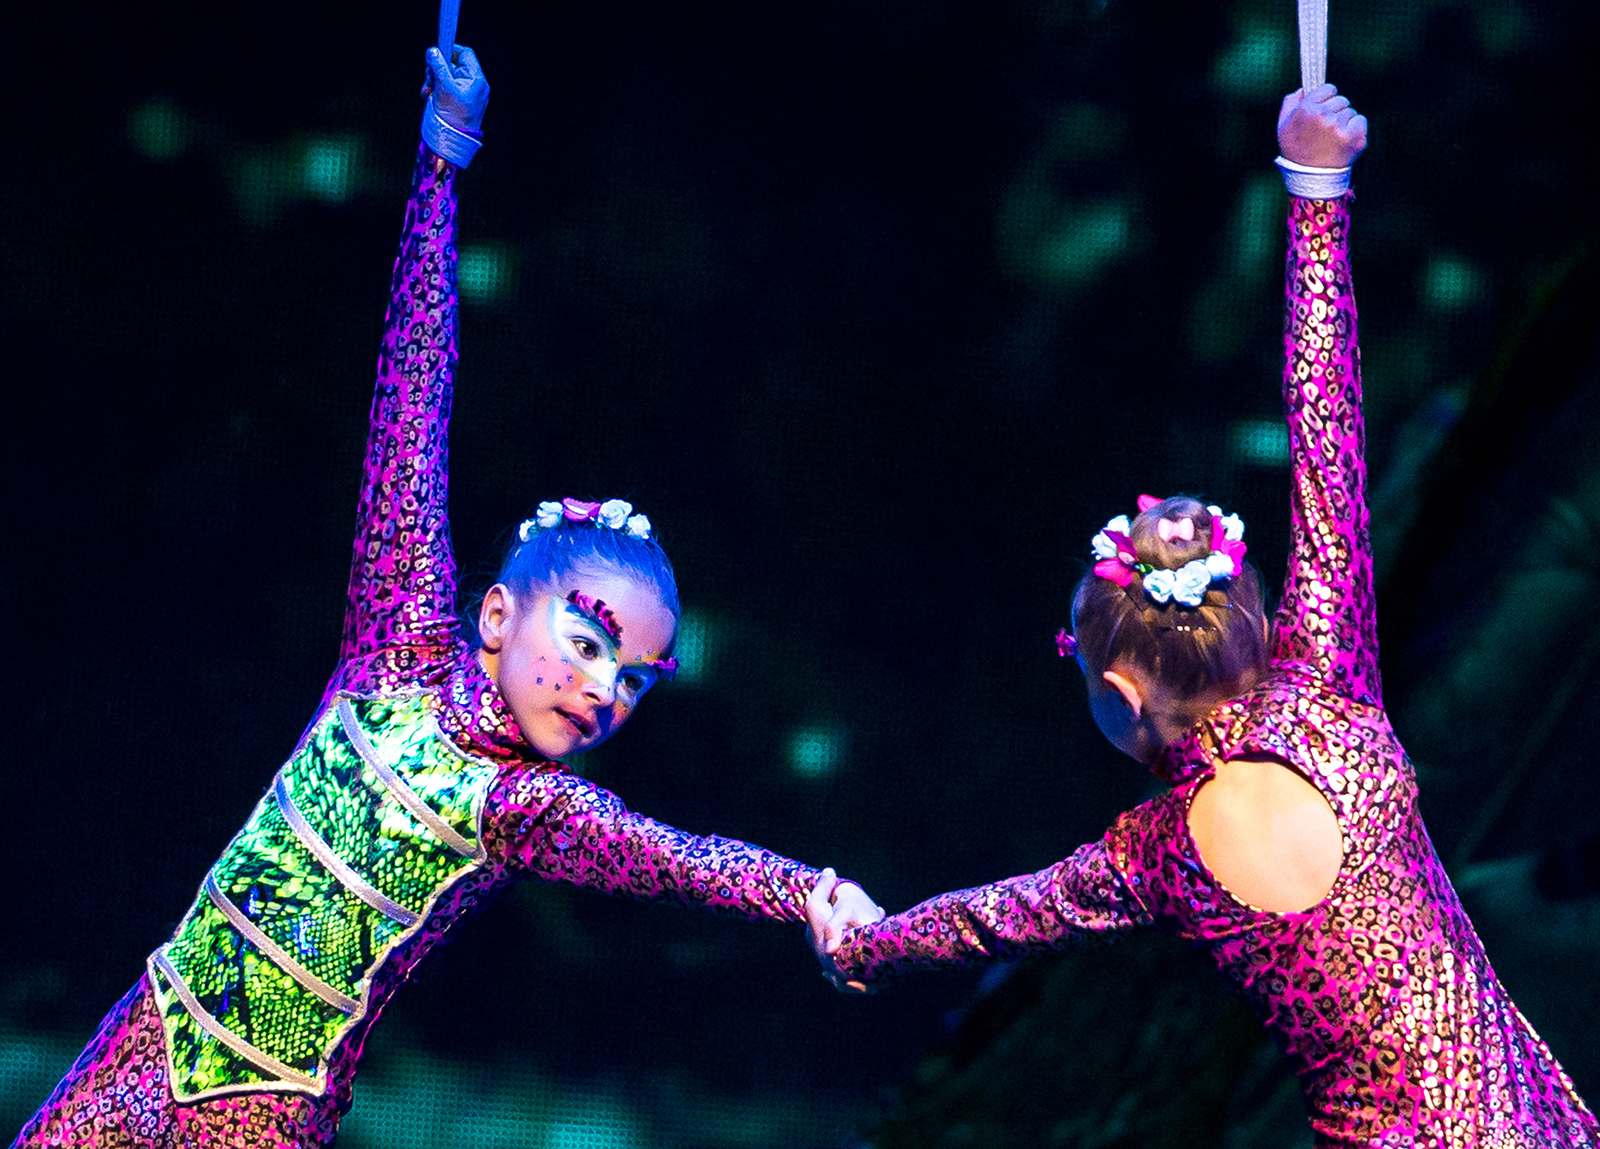 Performers hold hands in 'One Night For One Drop' by Cirque Du Soleil in Las Vegas, on March 18, 2016.